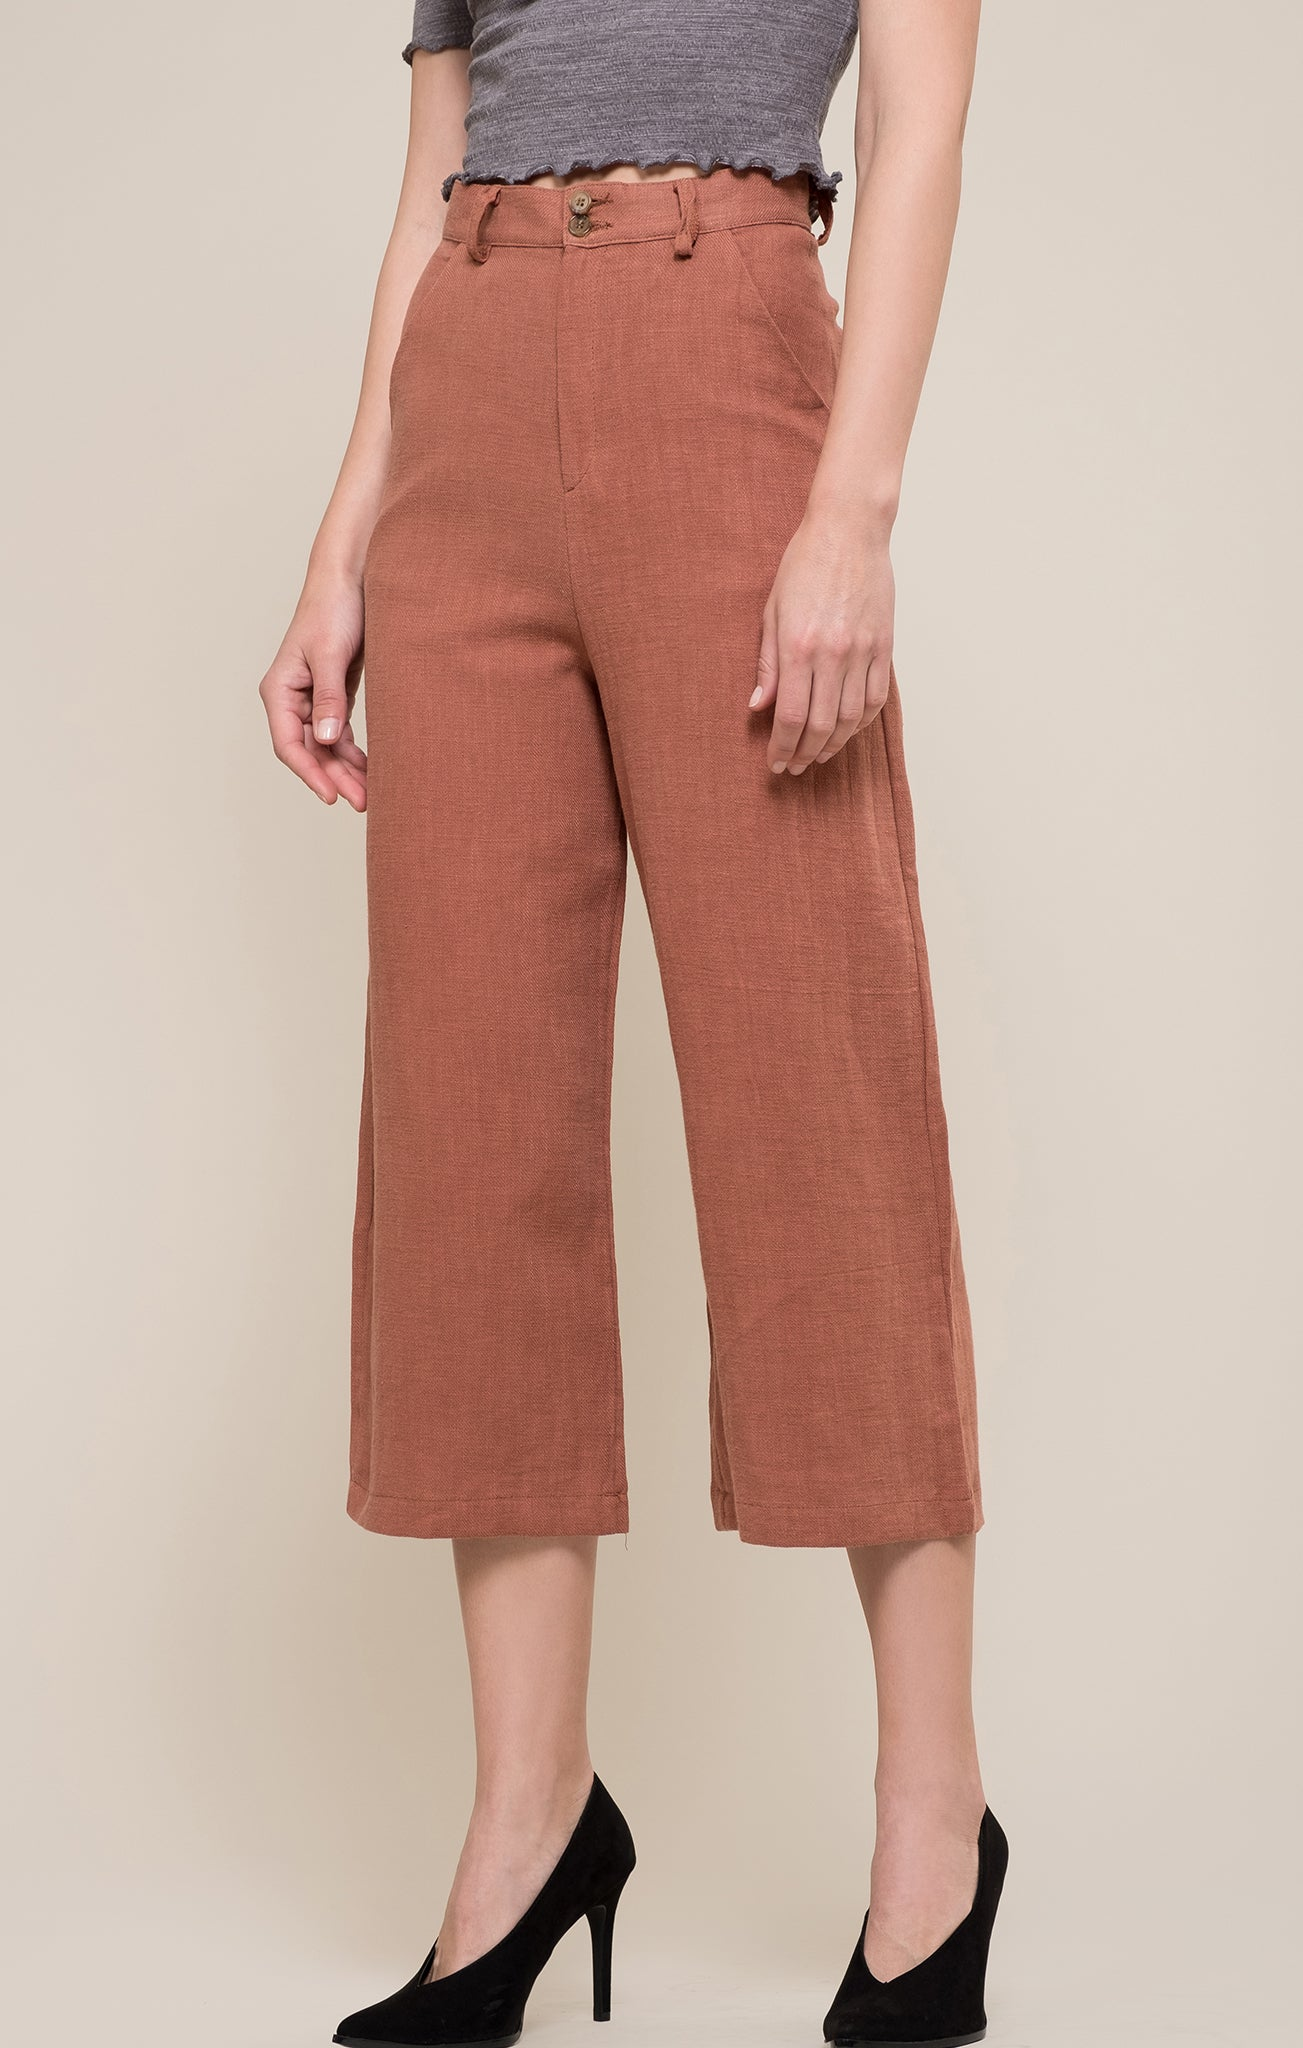 Shop women's pants in multiple styles, stretch, skinny, bootcut & more. Dressy or New Arrivals· Petite Collection· Free Shipping All Orders· Classic Office EssentialsStyles: Tops & Blouses, Pants & Skirts, Sweaters, Dresses, Plus Sizes.